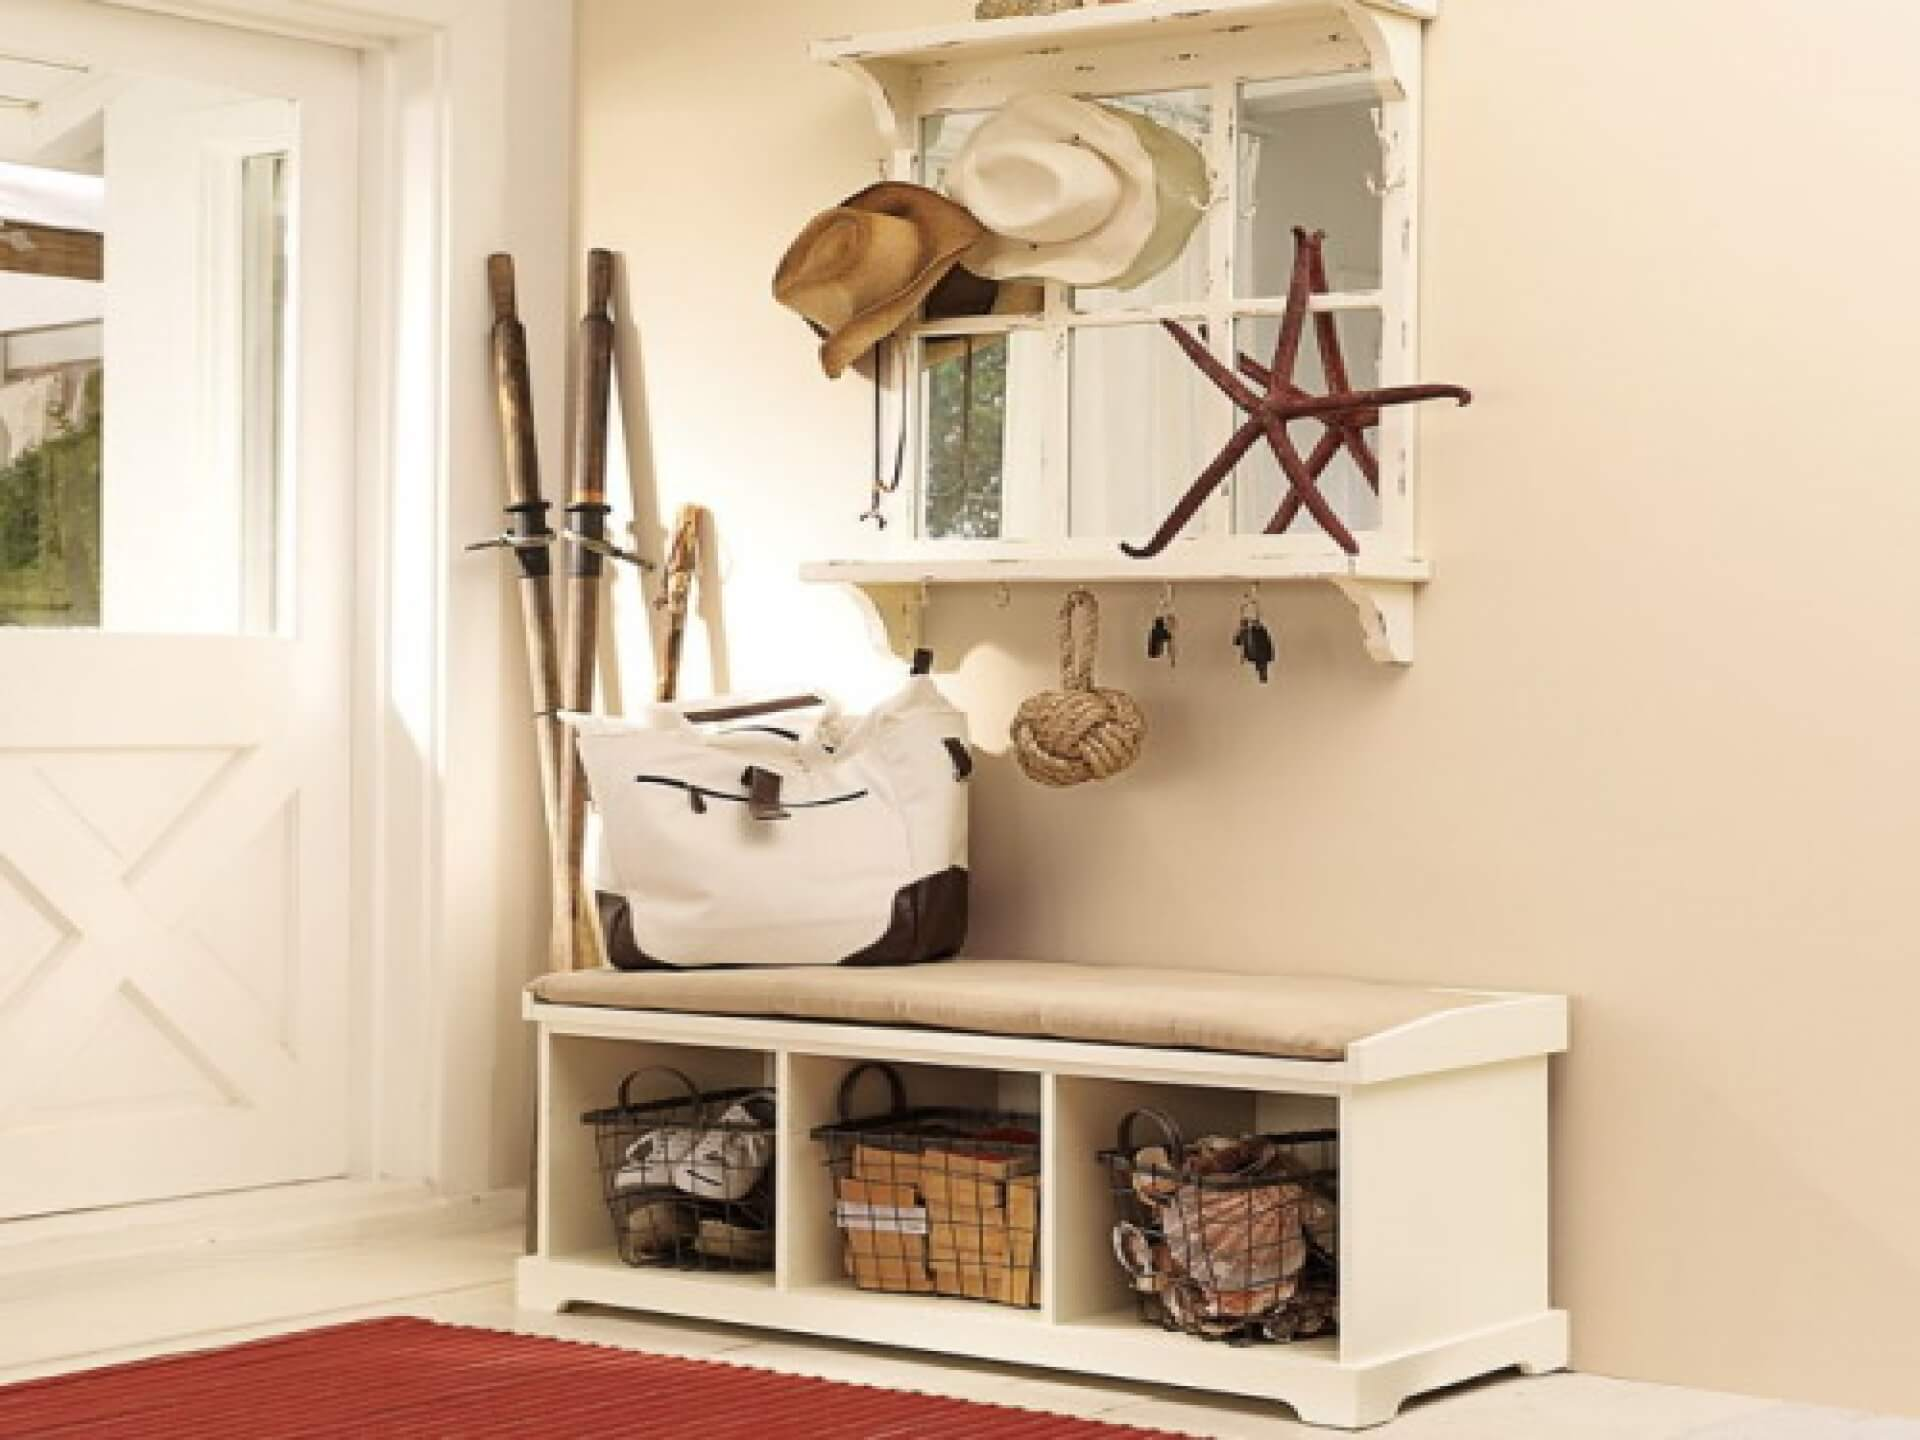 45 Superb Mudroom & Entryway Design Ideas with Benches